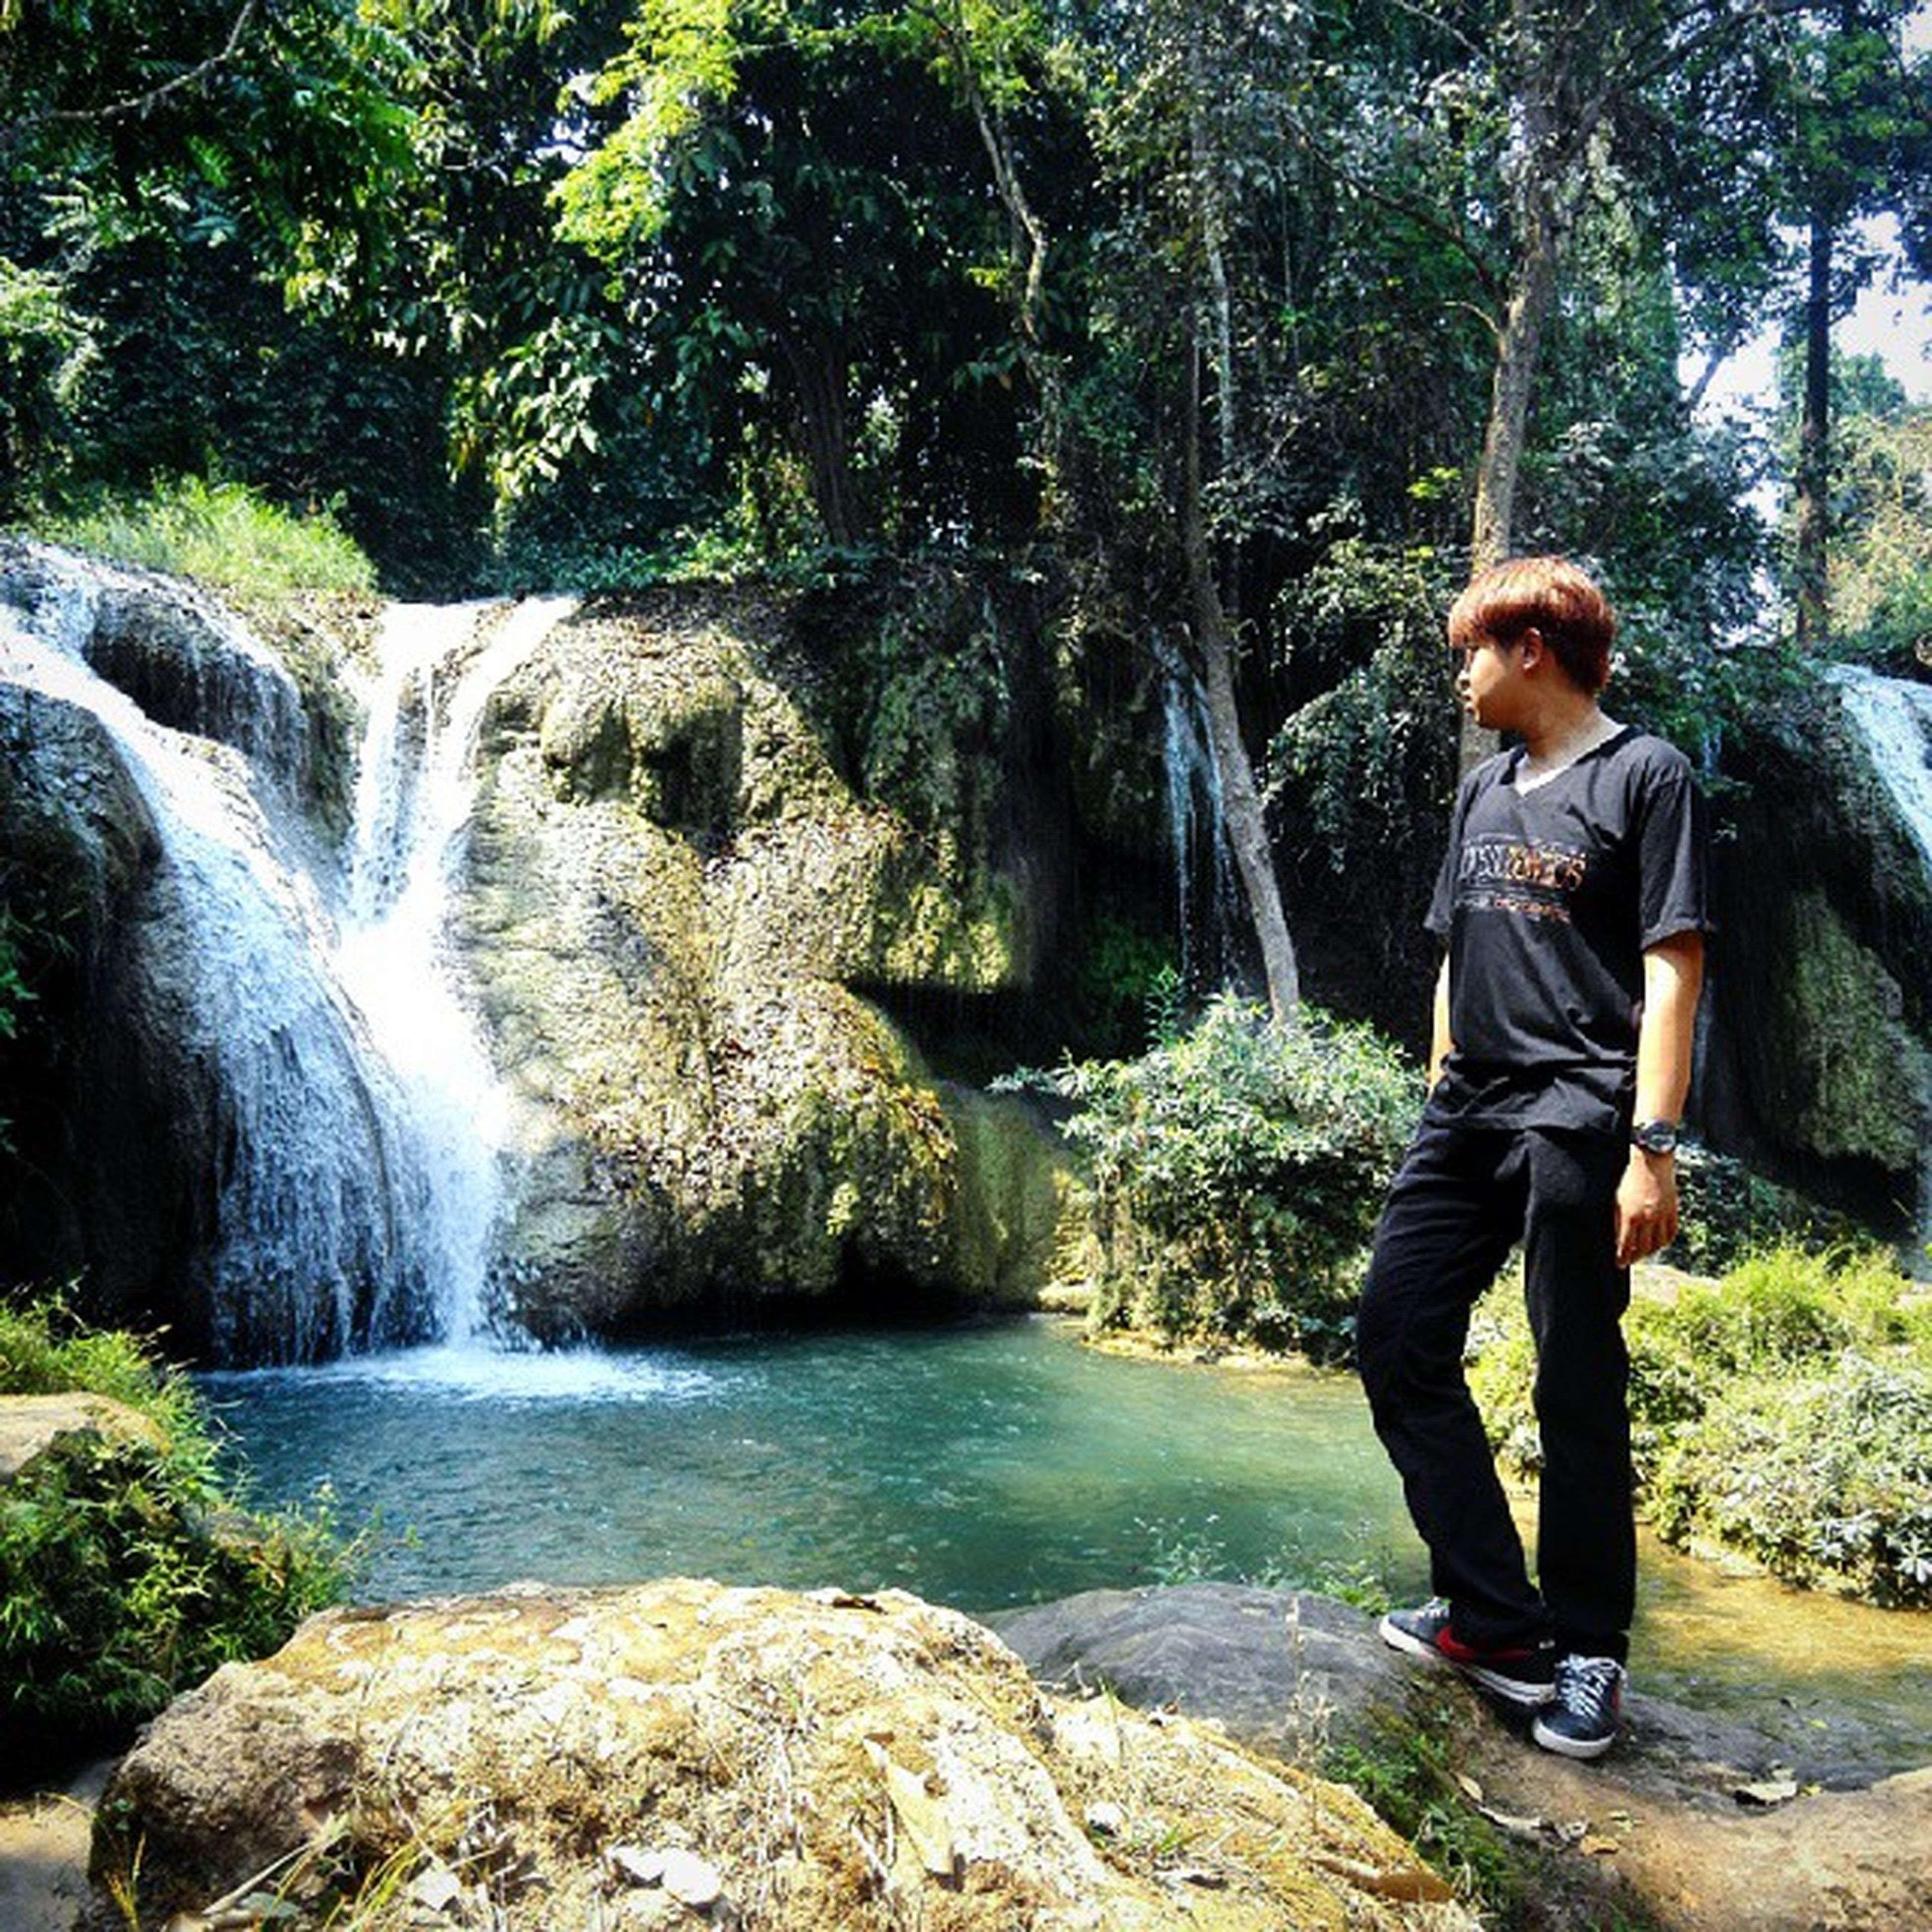 lifestyles, full length, leisure activity, water, casual clothing, tree, rock - object, rear view, forest, standing, nature, beauty in nature, men, day, waterfall, tranquility, vacations, river